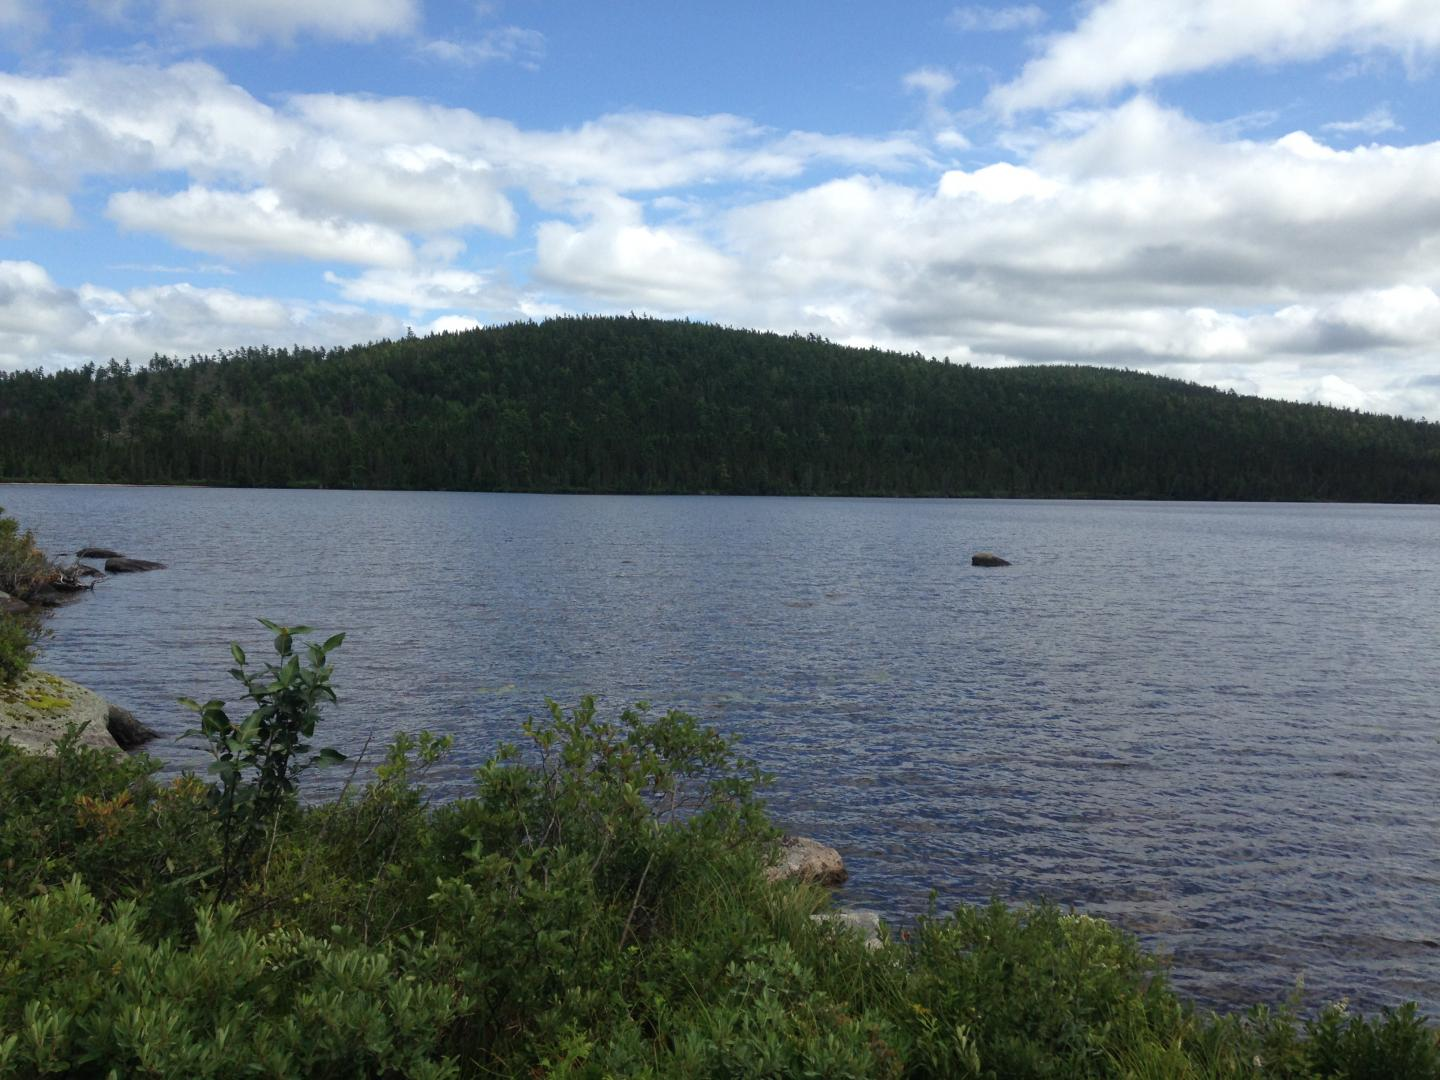 Fifty Years Later, DDT Lingers in Lake Ecosystems